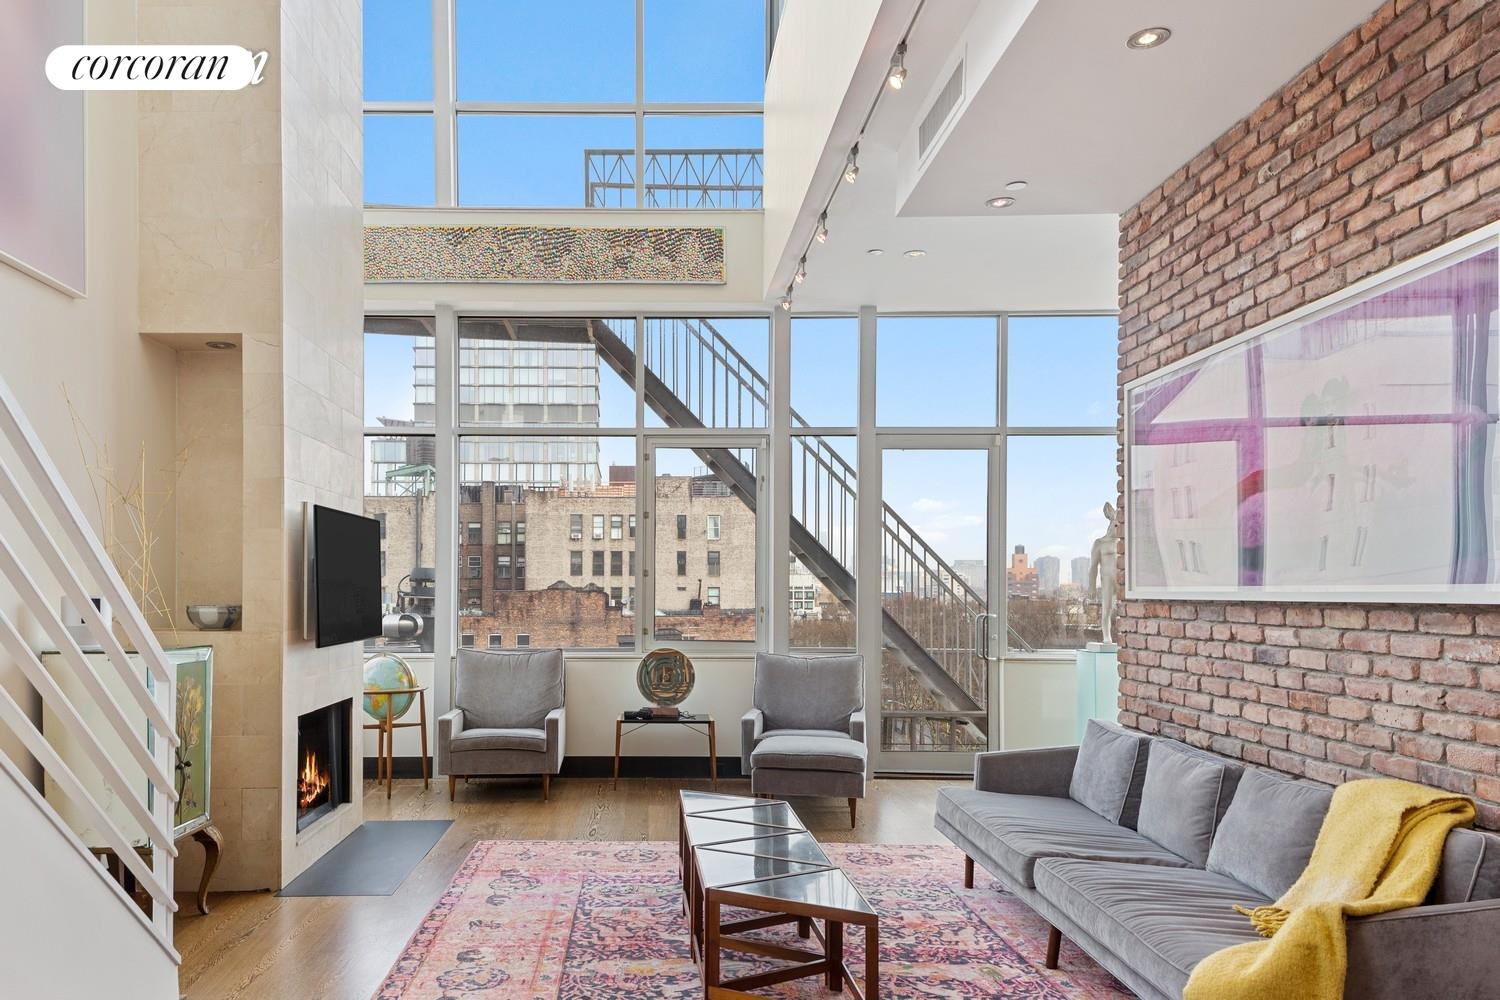 OUTDOOR LIVING!  Your own POOL!   All glass triplex with spectacular open city views.  15 Rivington Street is an intimate boutique condominium nestled at the juncture of the Lower East Side/ Soho/Nolita.   3BR/3BTH 2100 sq ft loft like space with a spectacular  1200 sq ft private roof deck complete with year round  lap pool and fully equipped outdoor kitchen.  Key locked elevator enters directly into this super stylish home with a wood burning fireplace, central air, laundry in unit, and newly renovated open kitchen with premium appliances including  Bosch, Viking, Zuma, Grohe.  Architecturally crafted, dramatic and serene.  A perfect retreat.   Incredibly low monthlies: $897 common charges $1,428 taxes.  A huge storage closet comes with the unit.  Pet friendly, investor and pied a terre friendly.  Located in the most vibrant neighborhood in Manhattan.   The Penthouse at 15 Rivington Street is a one-of-a-kind opportunity.     In-person showings by appointment.